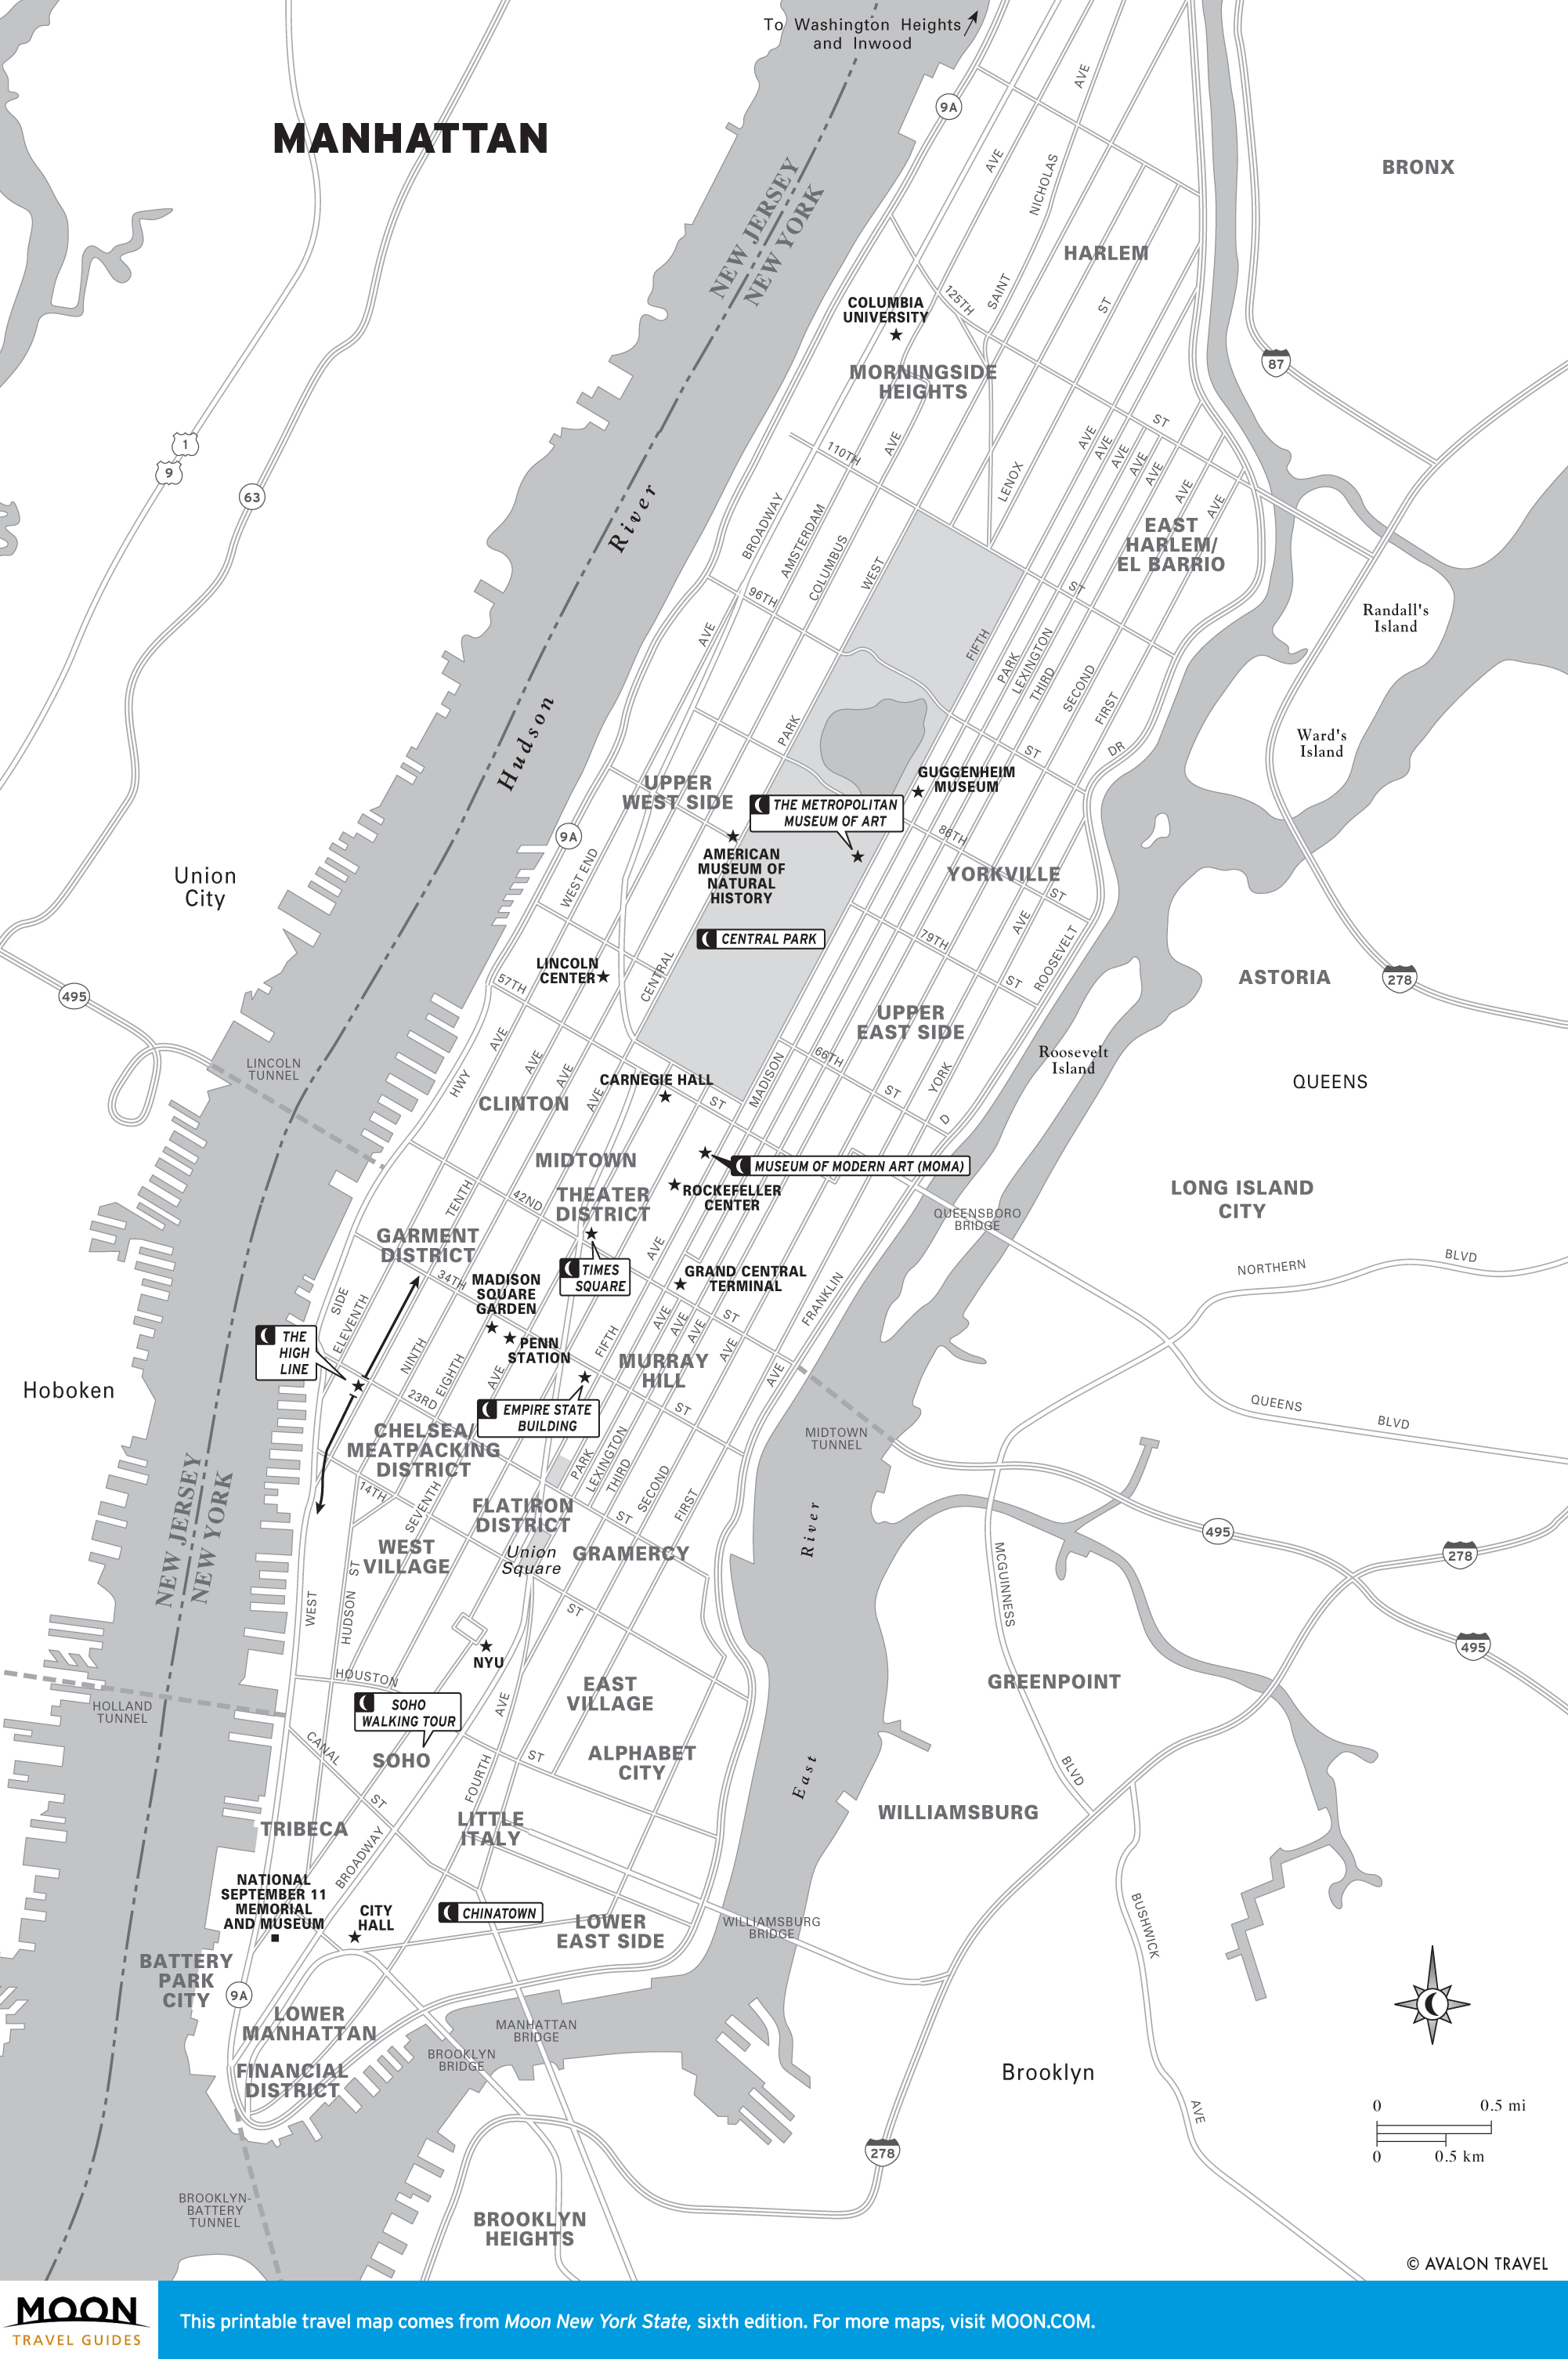 City Map Of New York State.New York Maps Moon Travel Guides